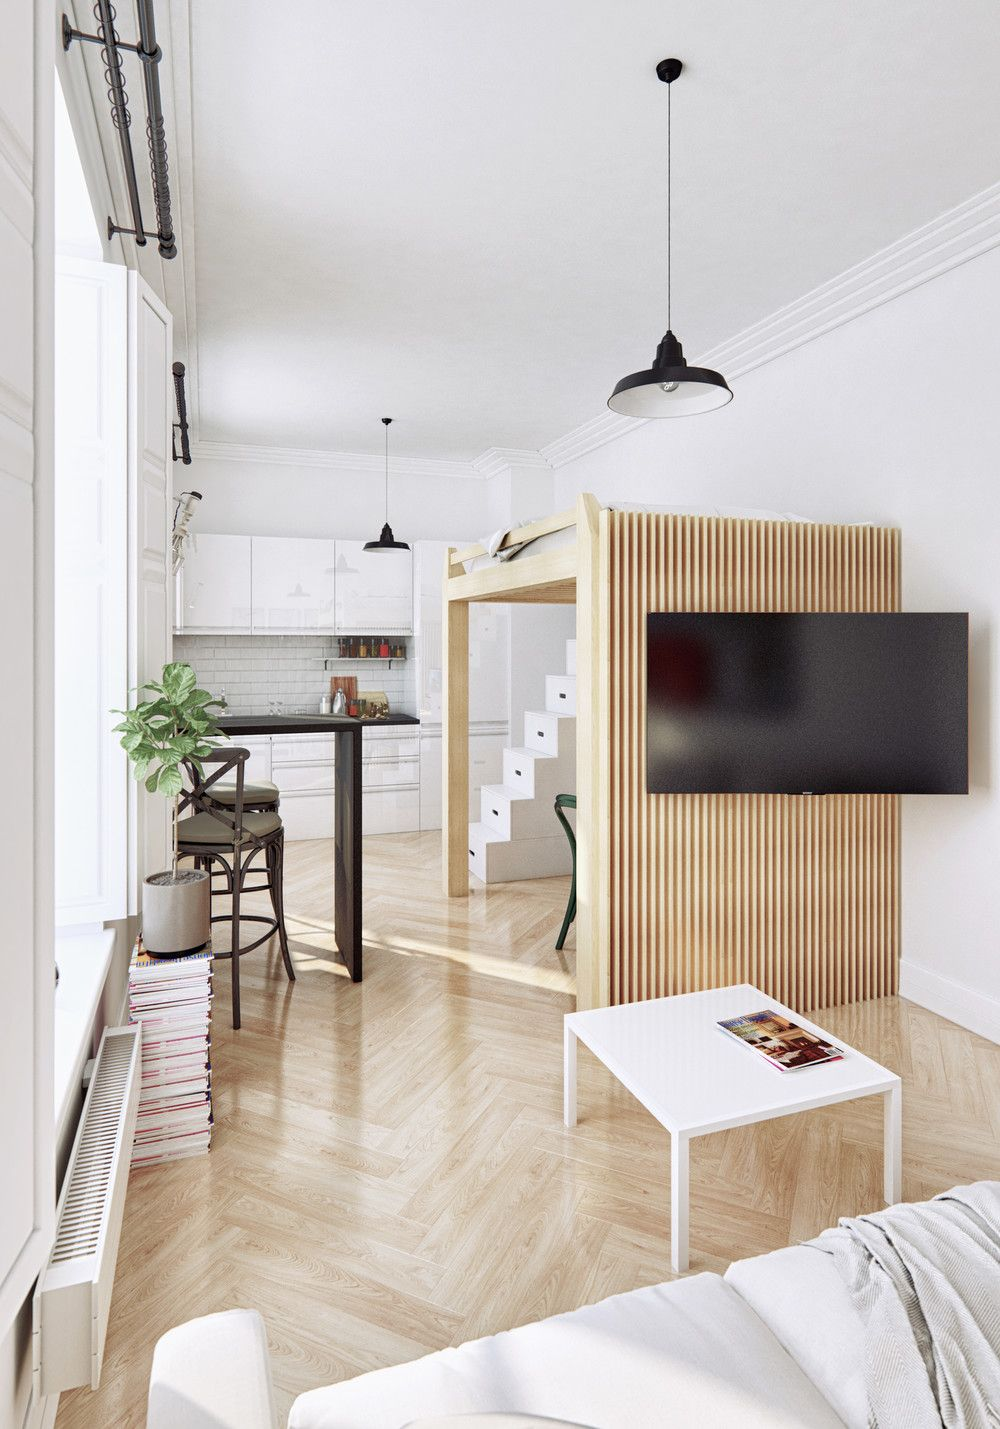 2 Small Apartment with Modern Minimalist Interior Design | Small ...